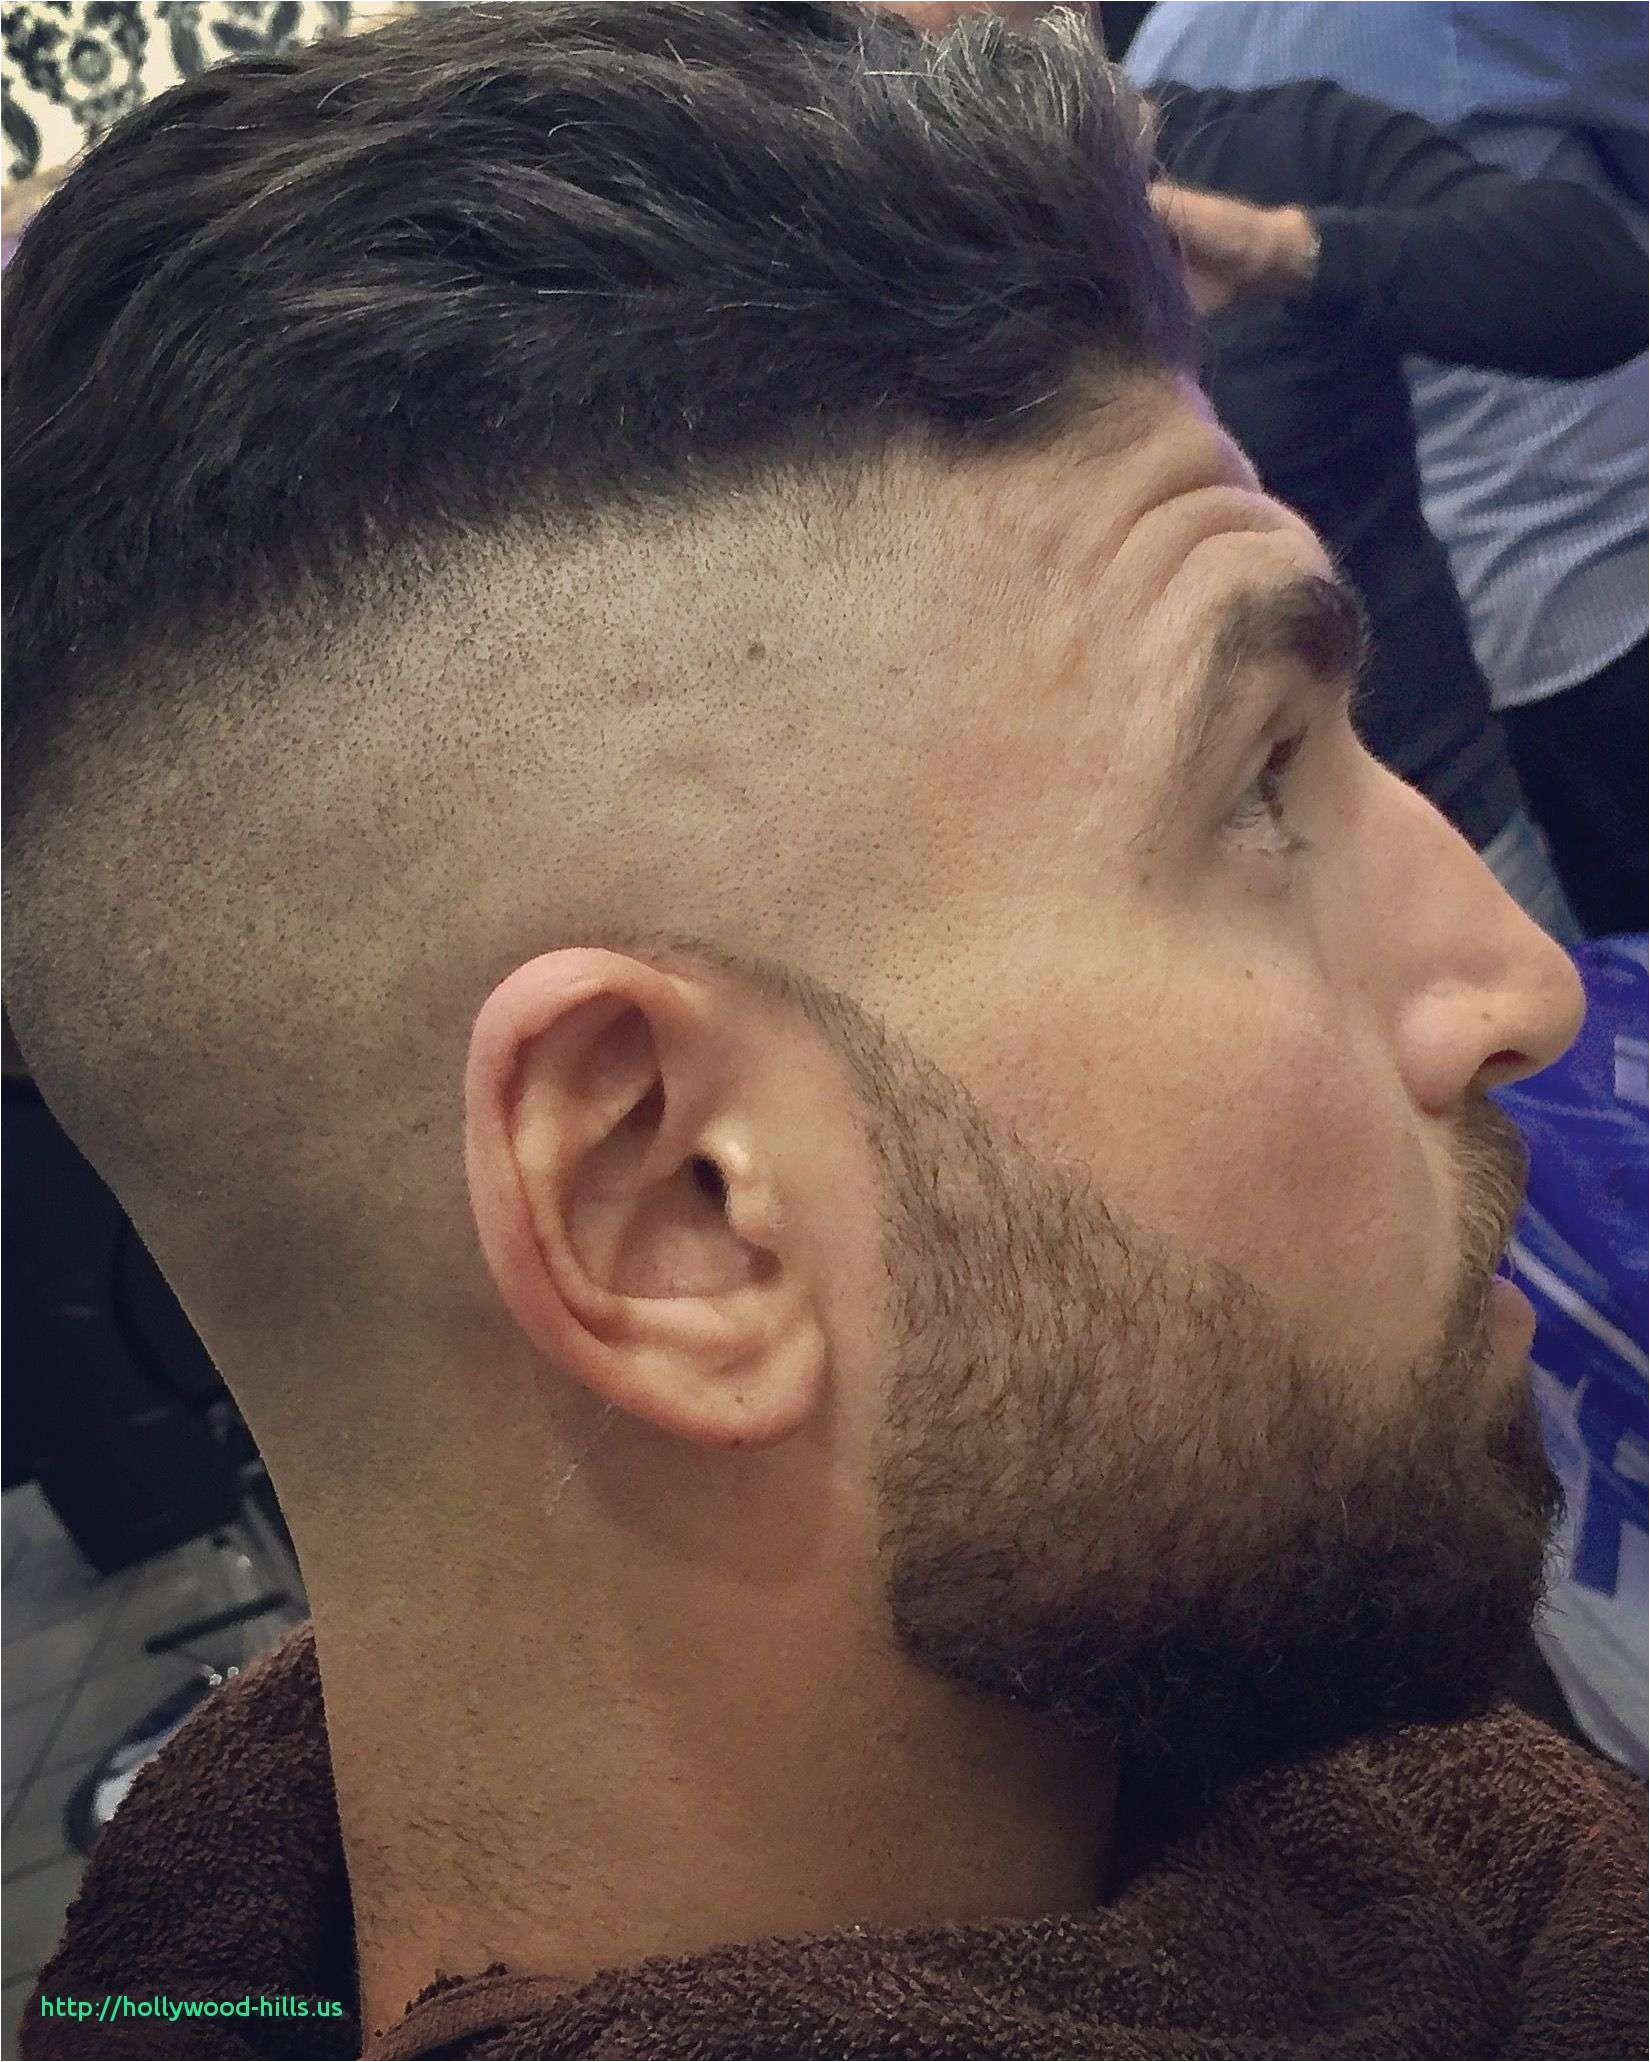 Hair Cuts For Asians Inspirational Hair Cut Fresh Gym Hairstyles Male New Hairstyles For Men Luxury